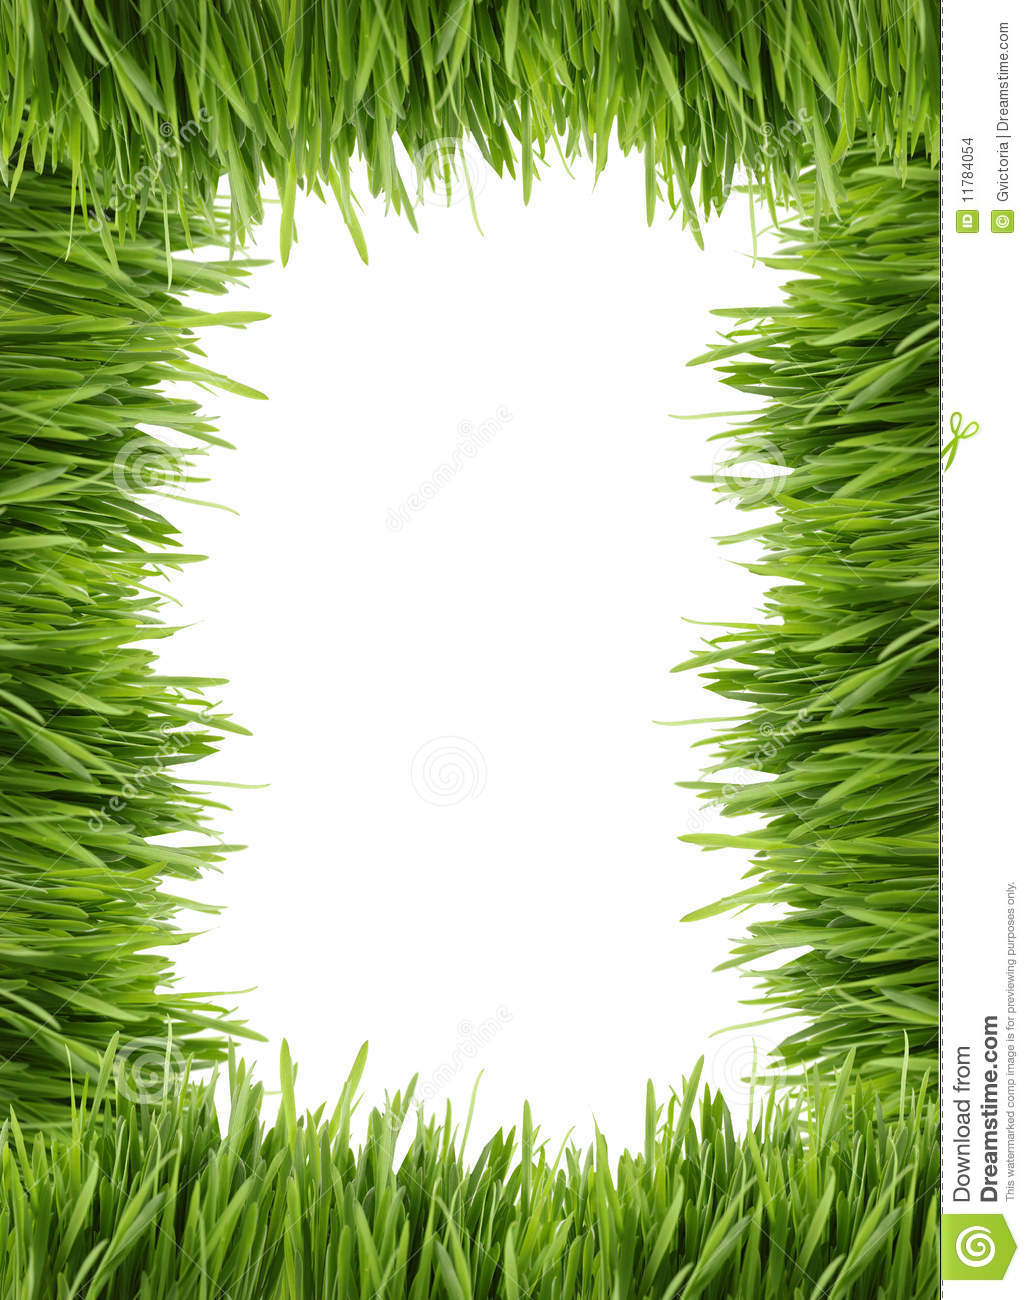 Tall grass border or frame stock images image 11784054 for Tall grass border